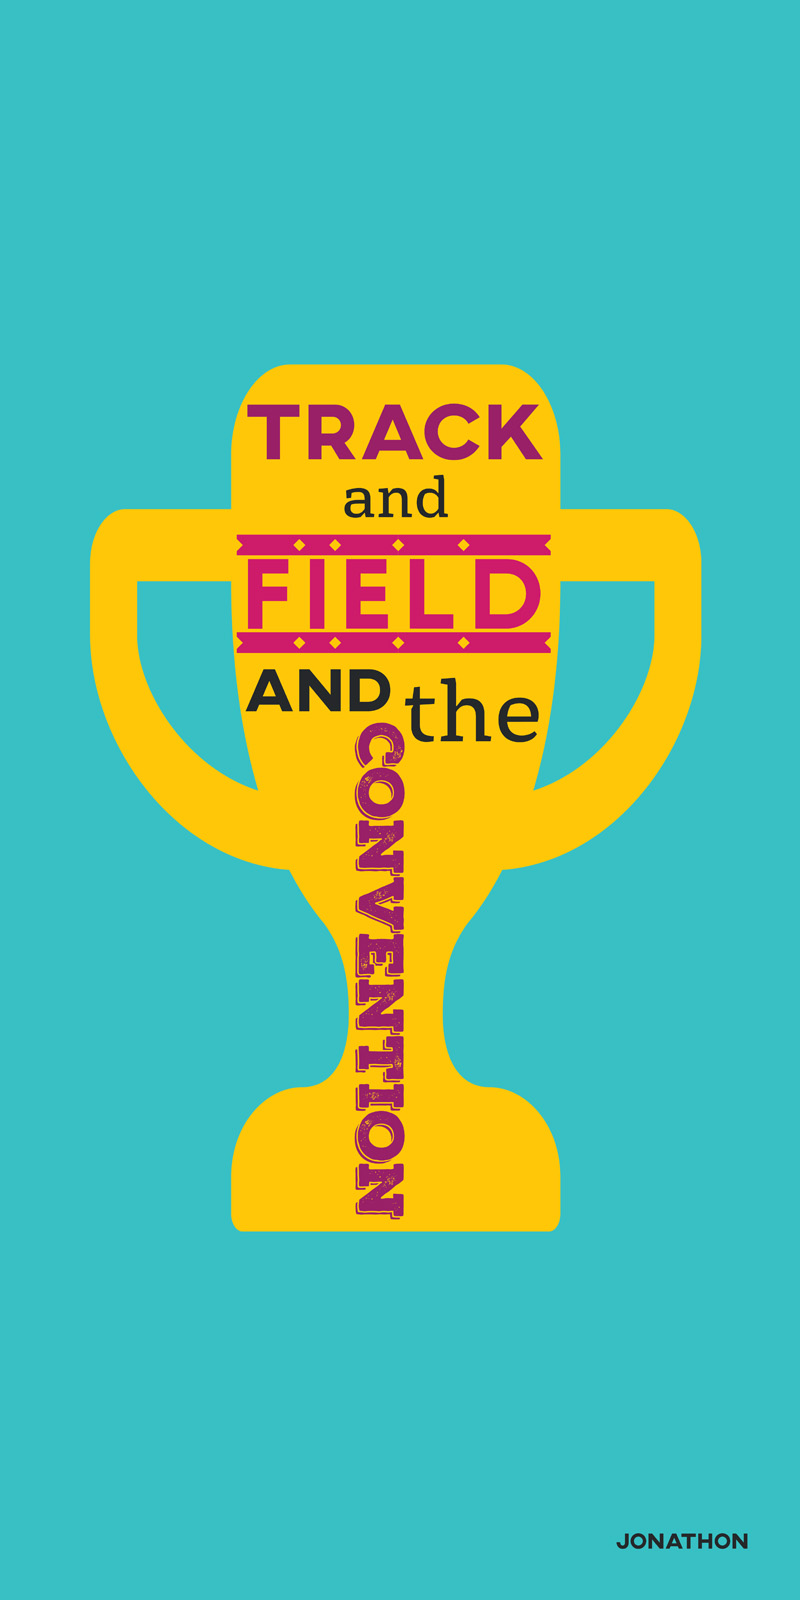 Track and field and the convention